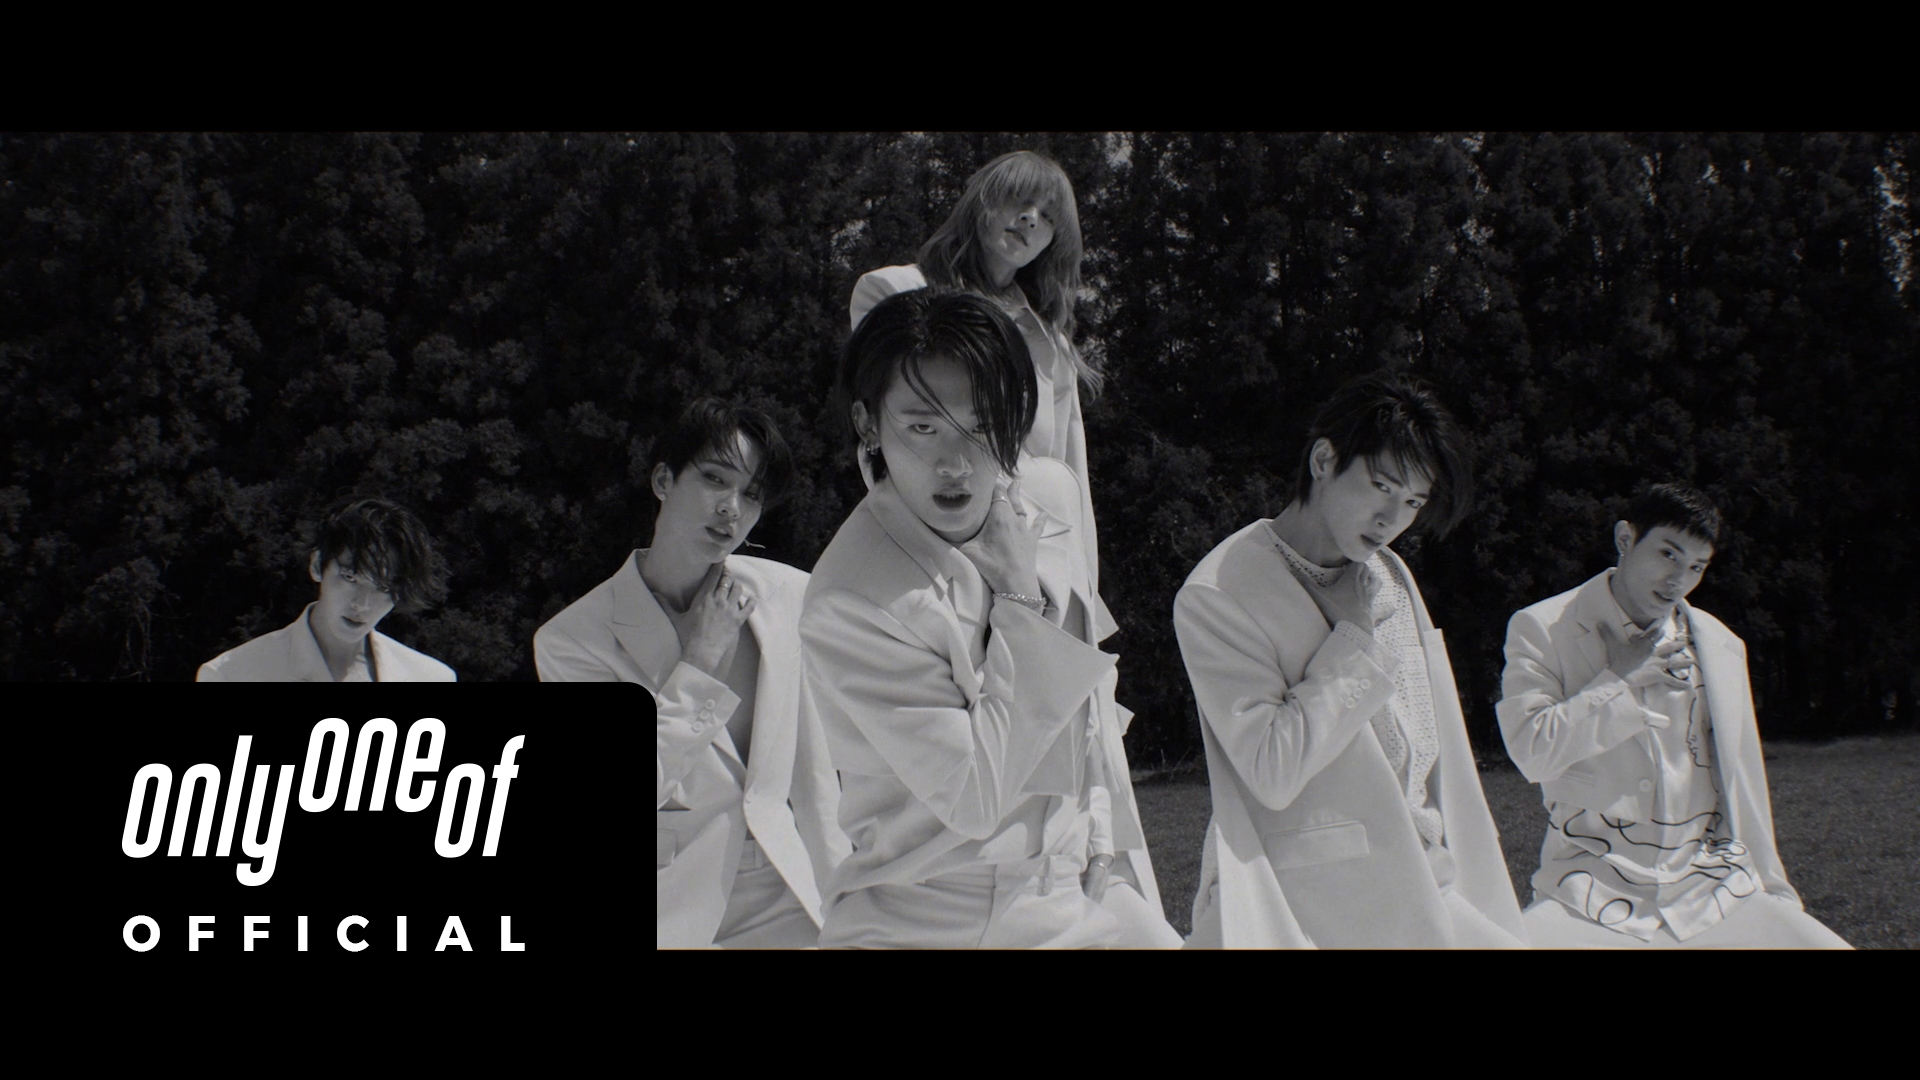 """OnlyOneOf official on Twitter: """"[#Notice/📌] OnlyOneOf (온리원오브) - 'libidO' MV YouTube 최초 공개 2021. 04. 08 6PM (KST) ▷ https://t.co/VxJzNFZ9n4 #OnlyOneOf #온리원오브 #Instinct_Part1 #libidO… https://t.co/c9JNamofI4"""""""